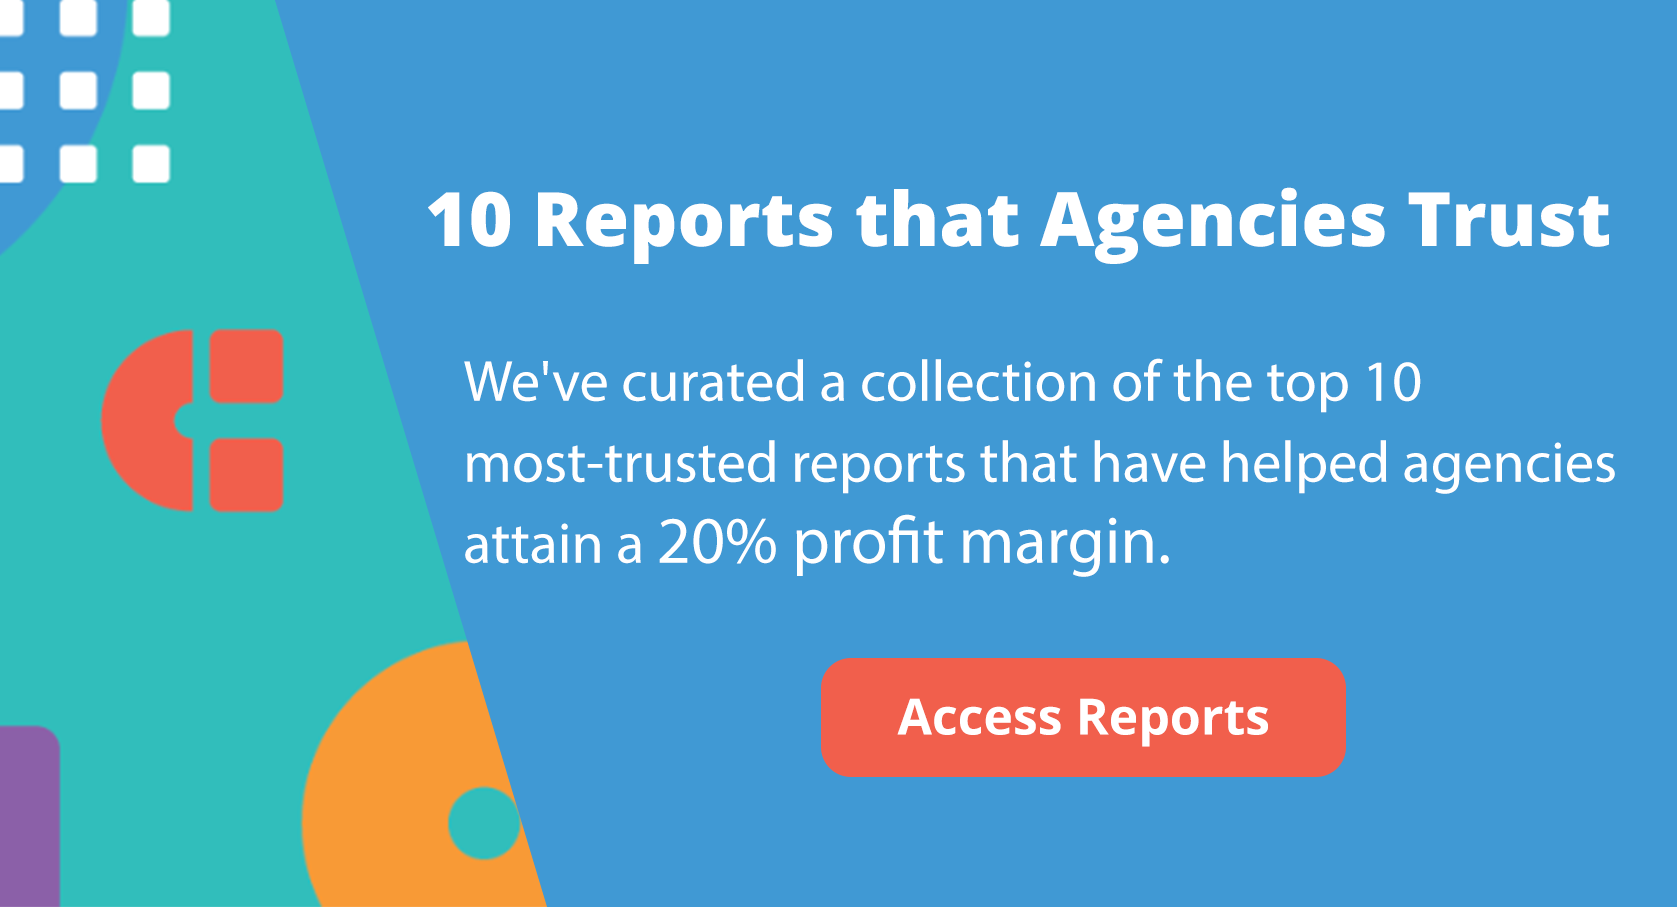 10 Reports that Agencies Trust